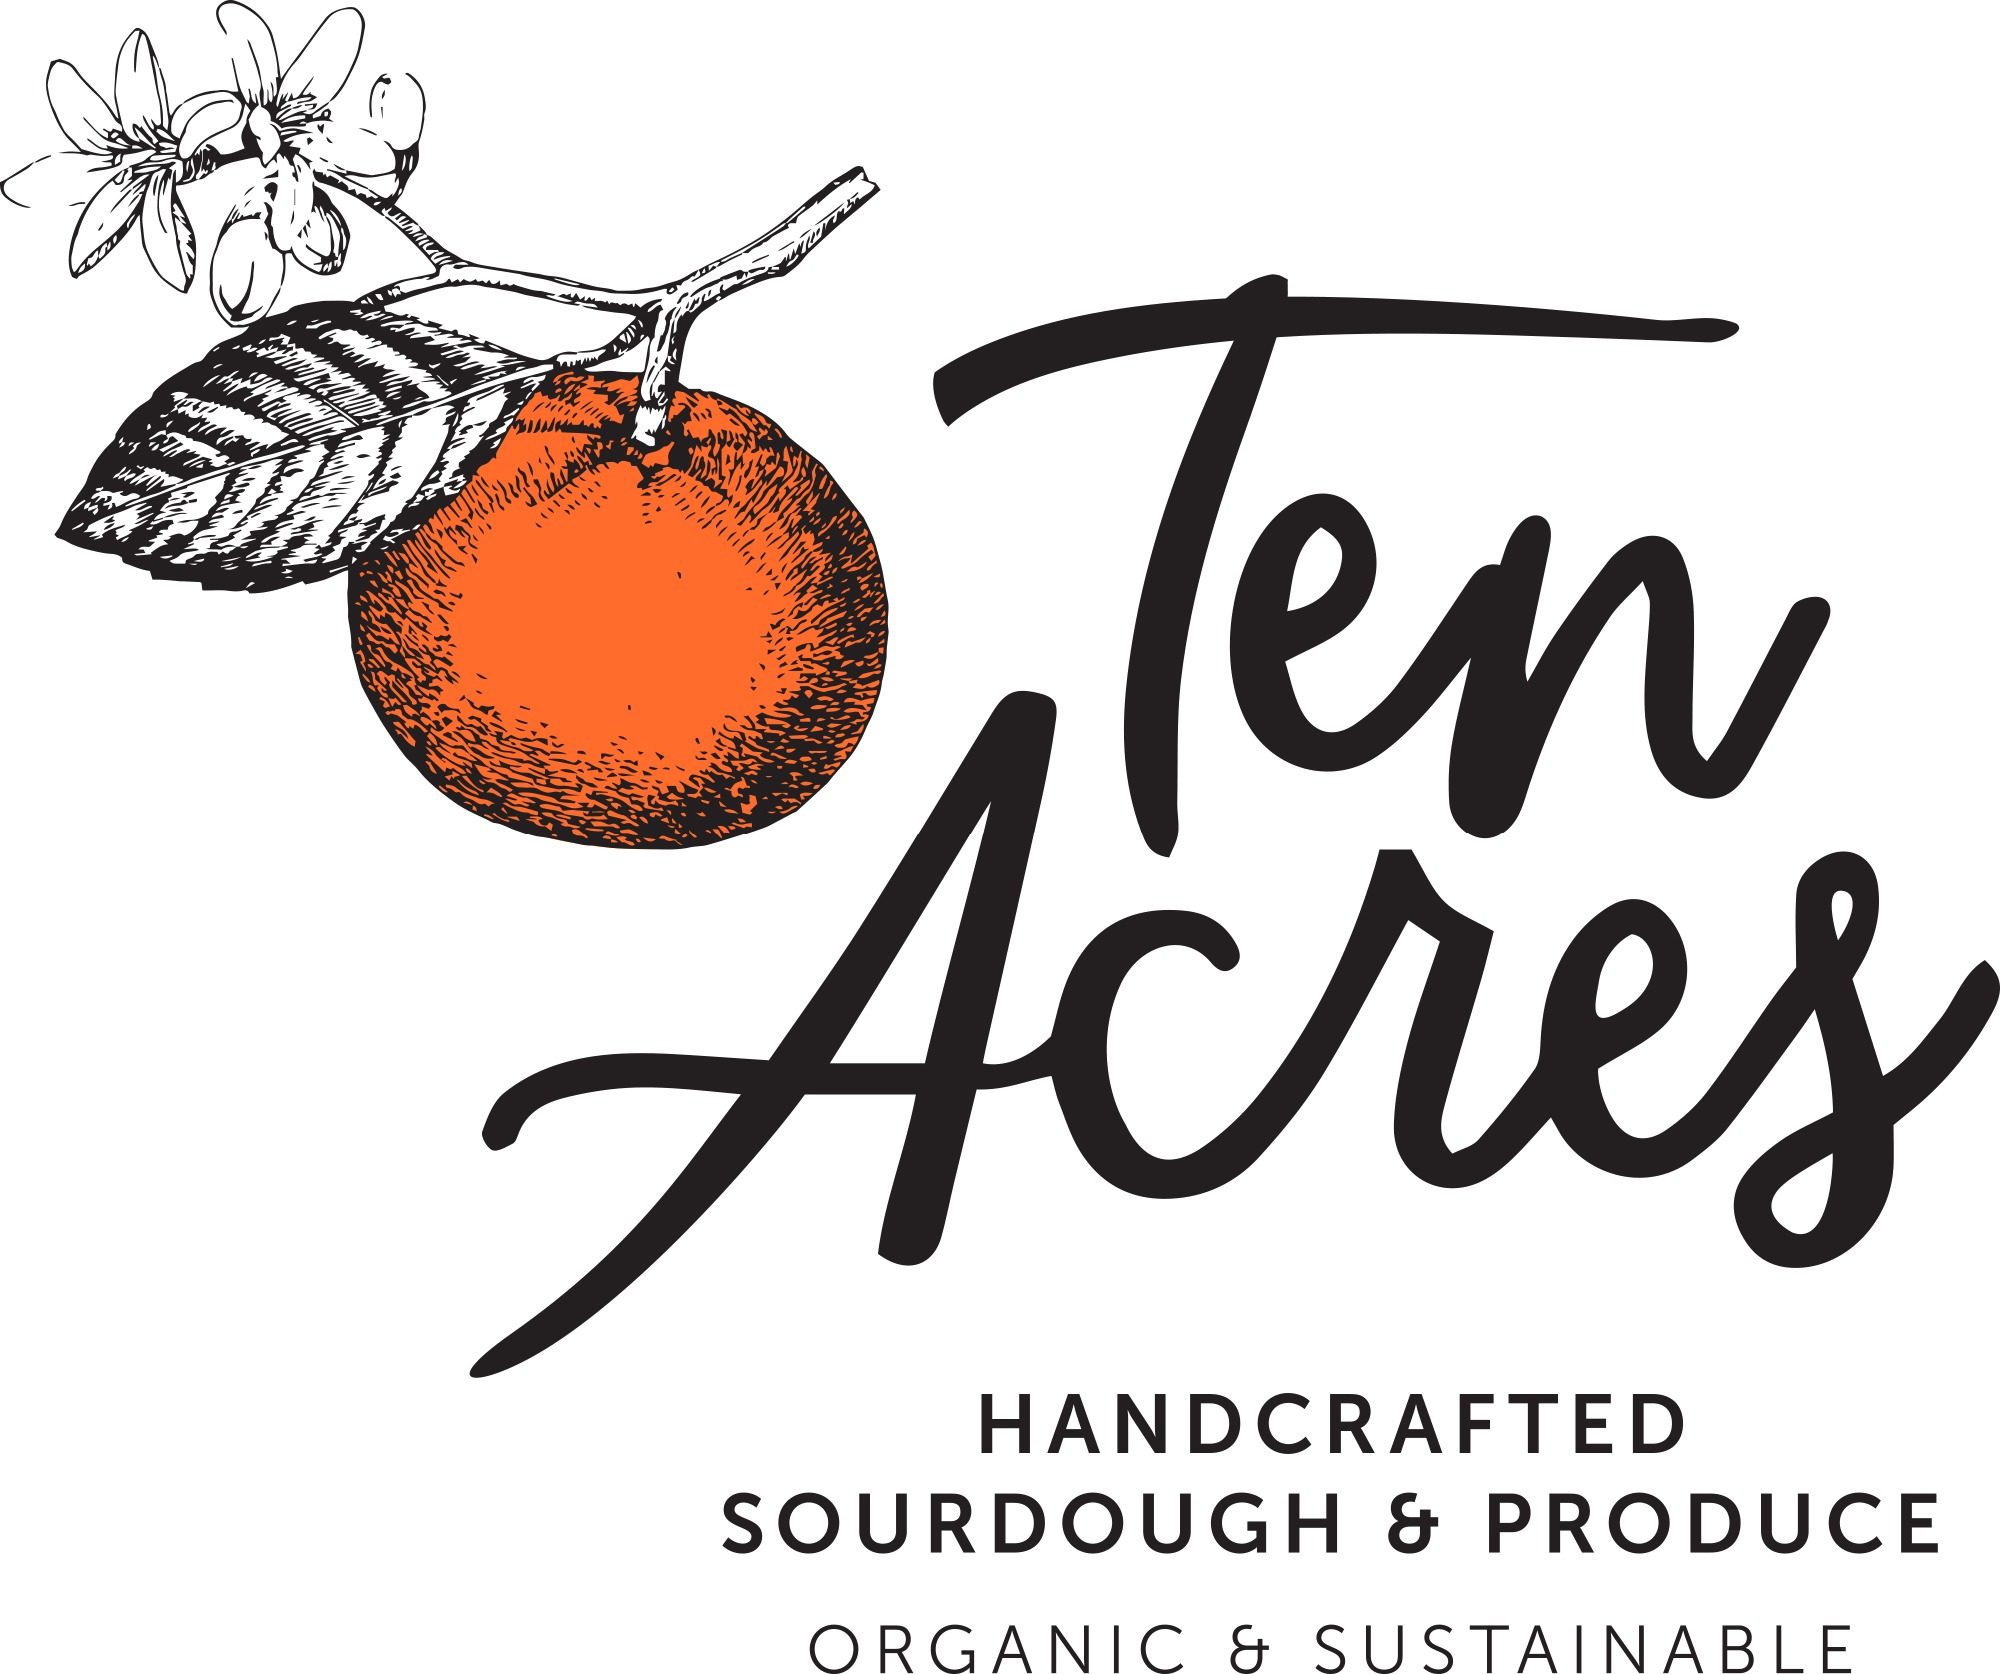 Ten Acres Bakery